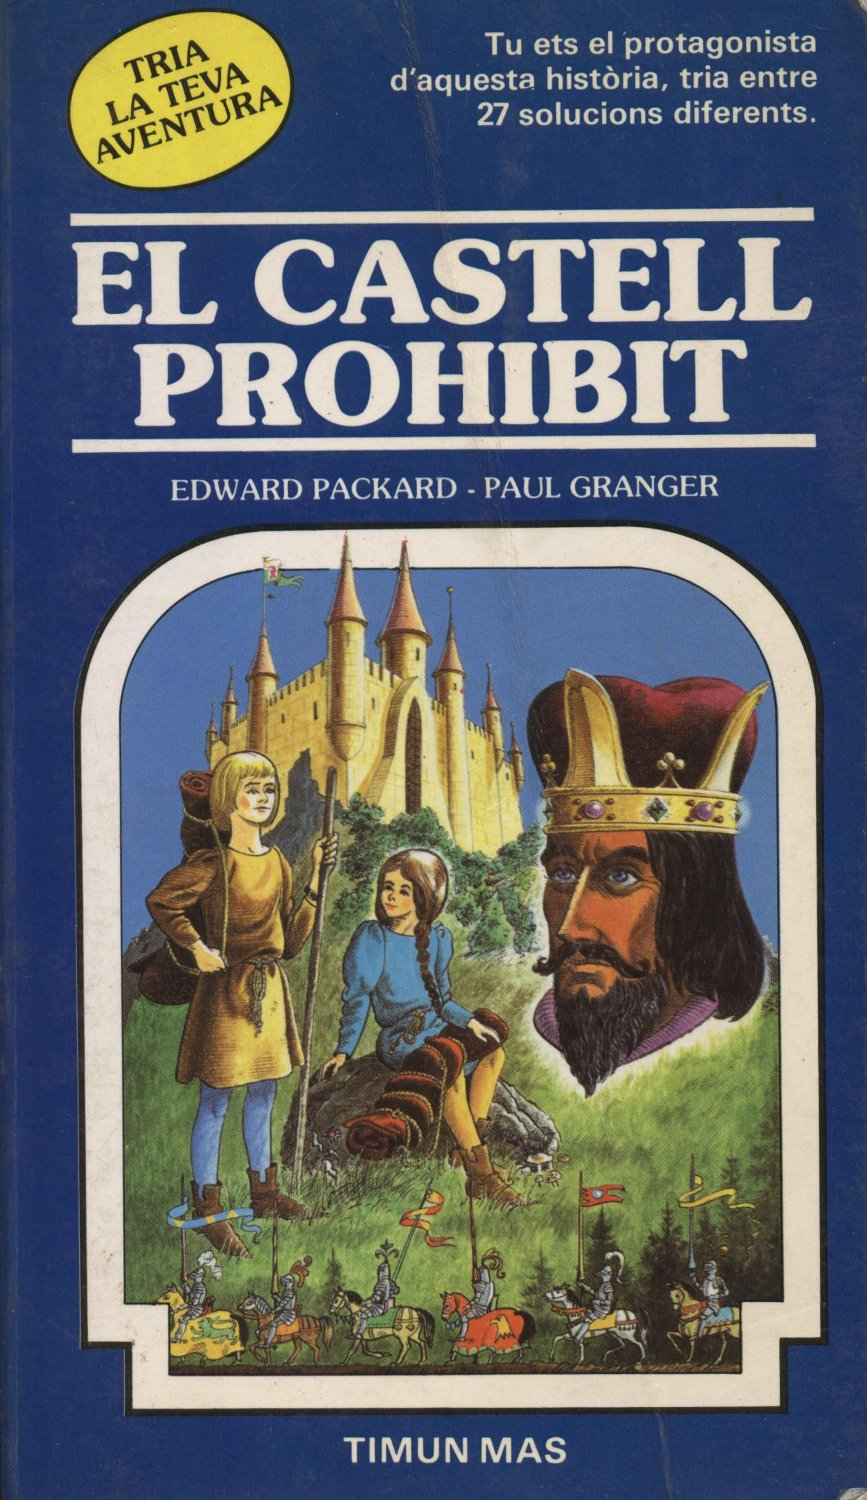 Venda online de llibres d'ocasió com El castell prohibit - Edward Packard - Paul Granger a bratac.cat